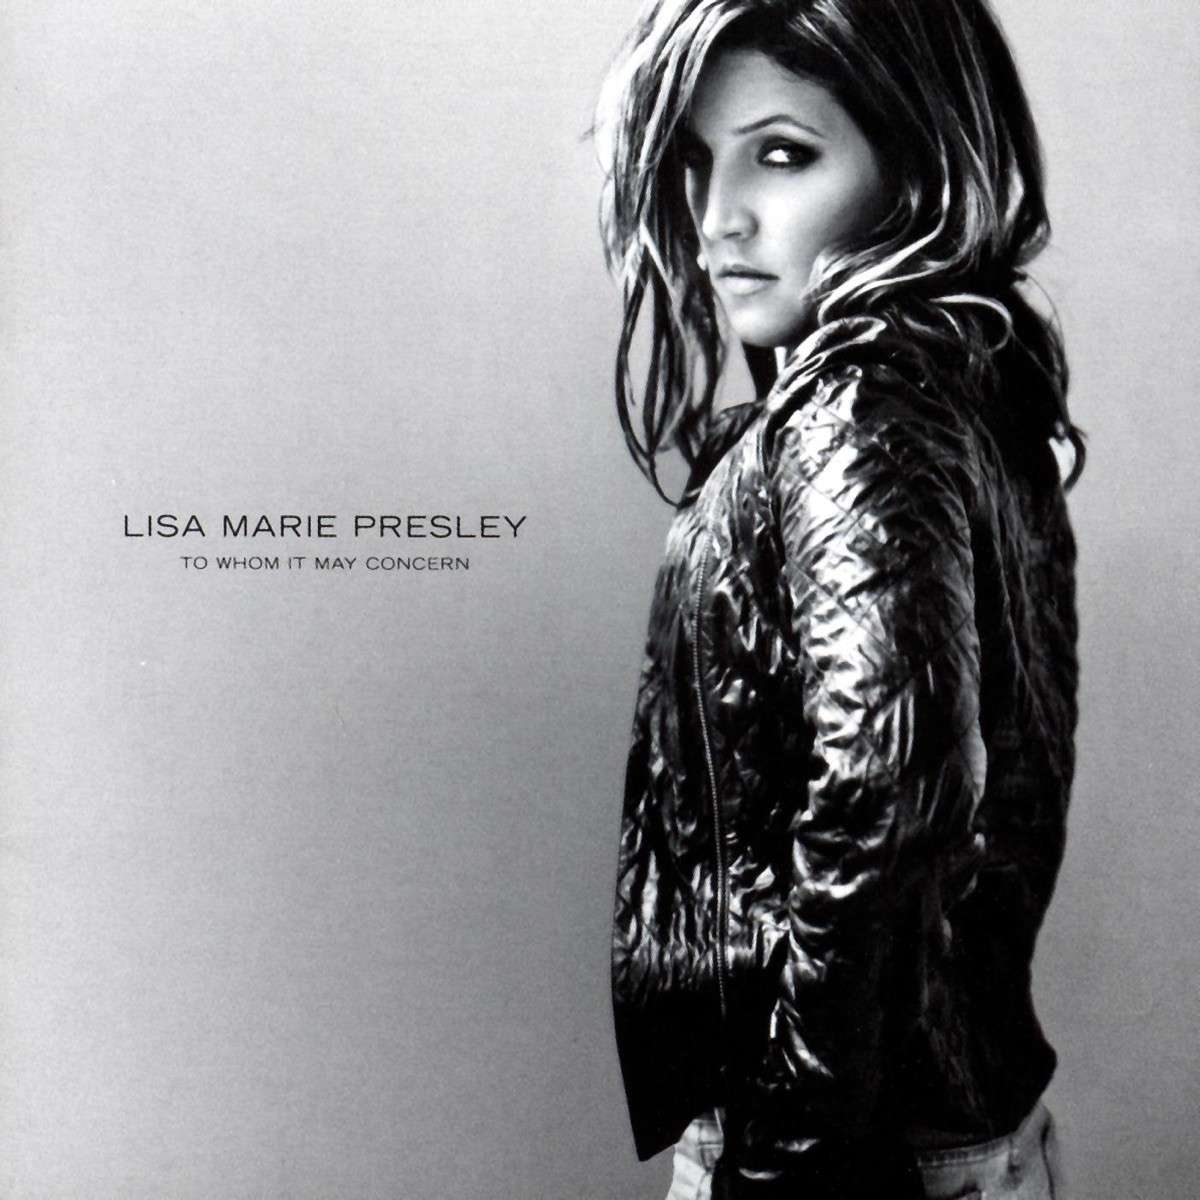 Lisa Marie Presley - To Whom It May Concern CD - CDST 1229